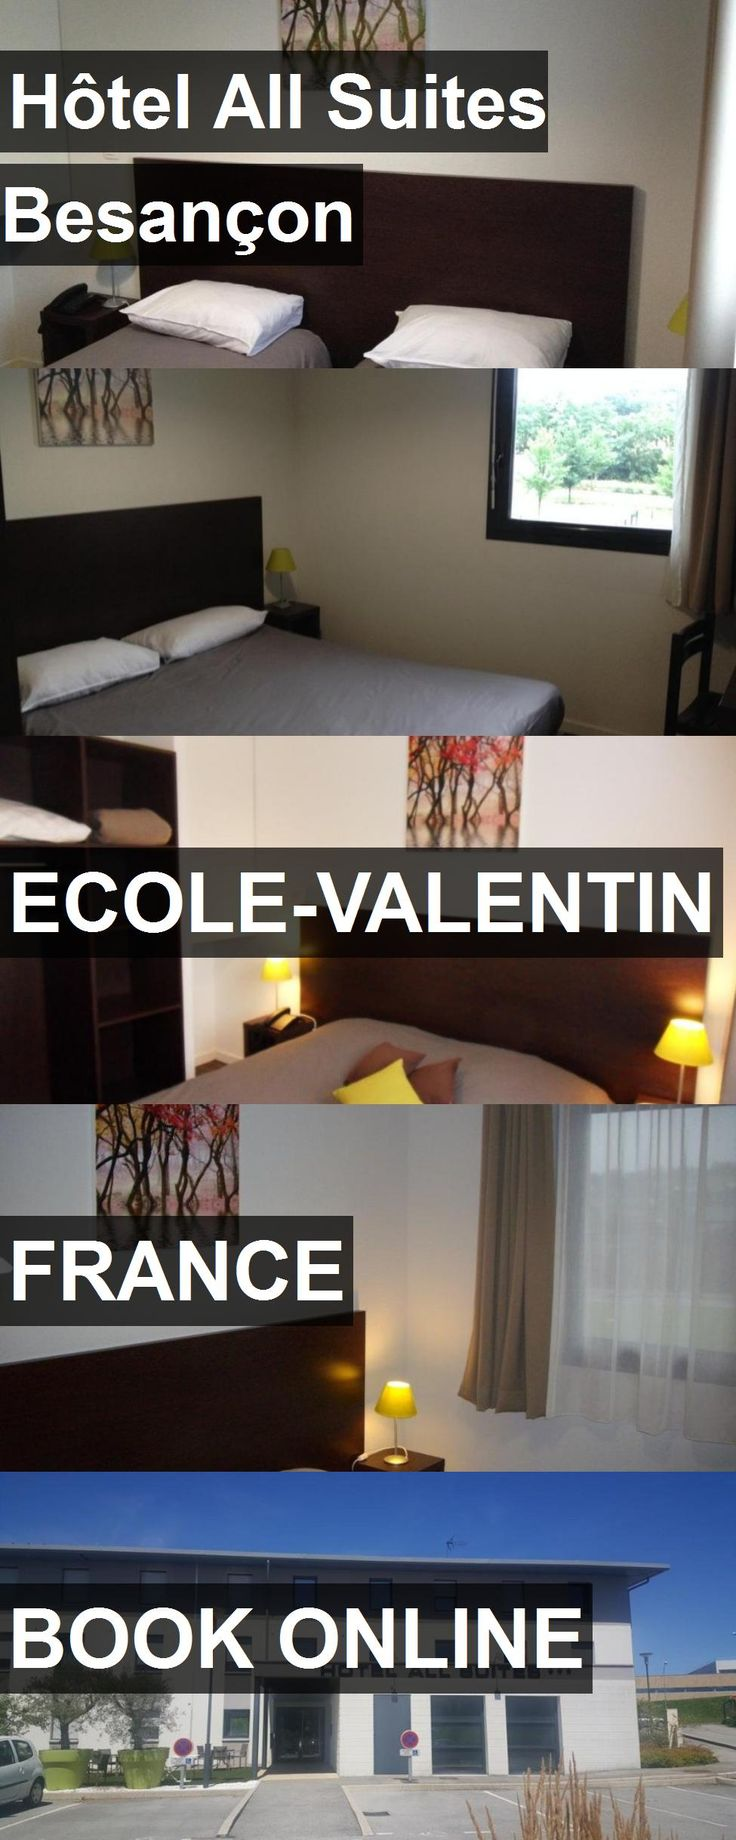 Hotel Hôtel All Suites Besançon in Ecole-Valentin, France. For more information, photos, reviews and best prices please follow the link. #France #Ecole-Valentin #hotel #travel #vacation